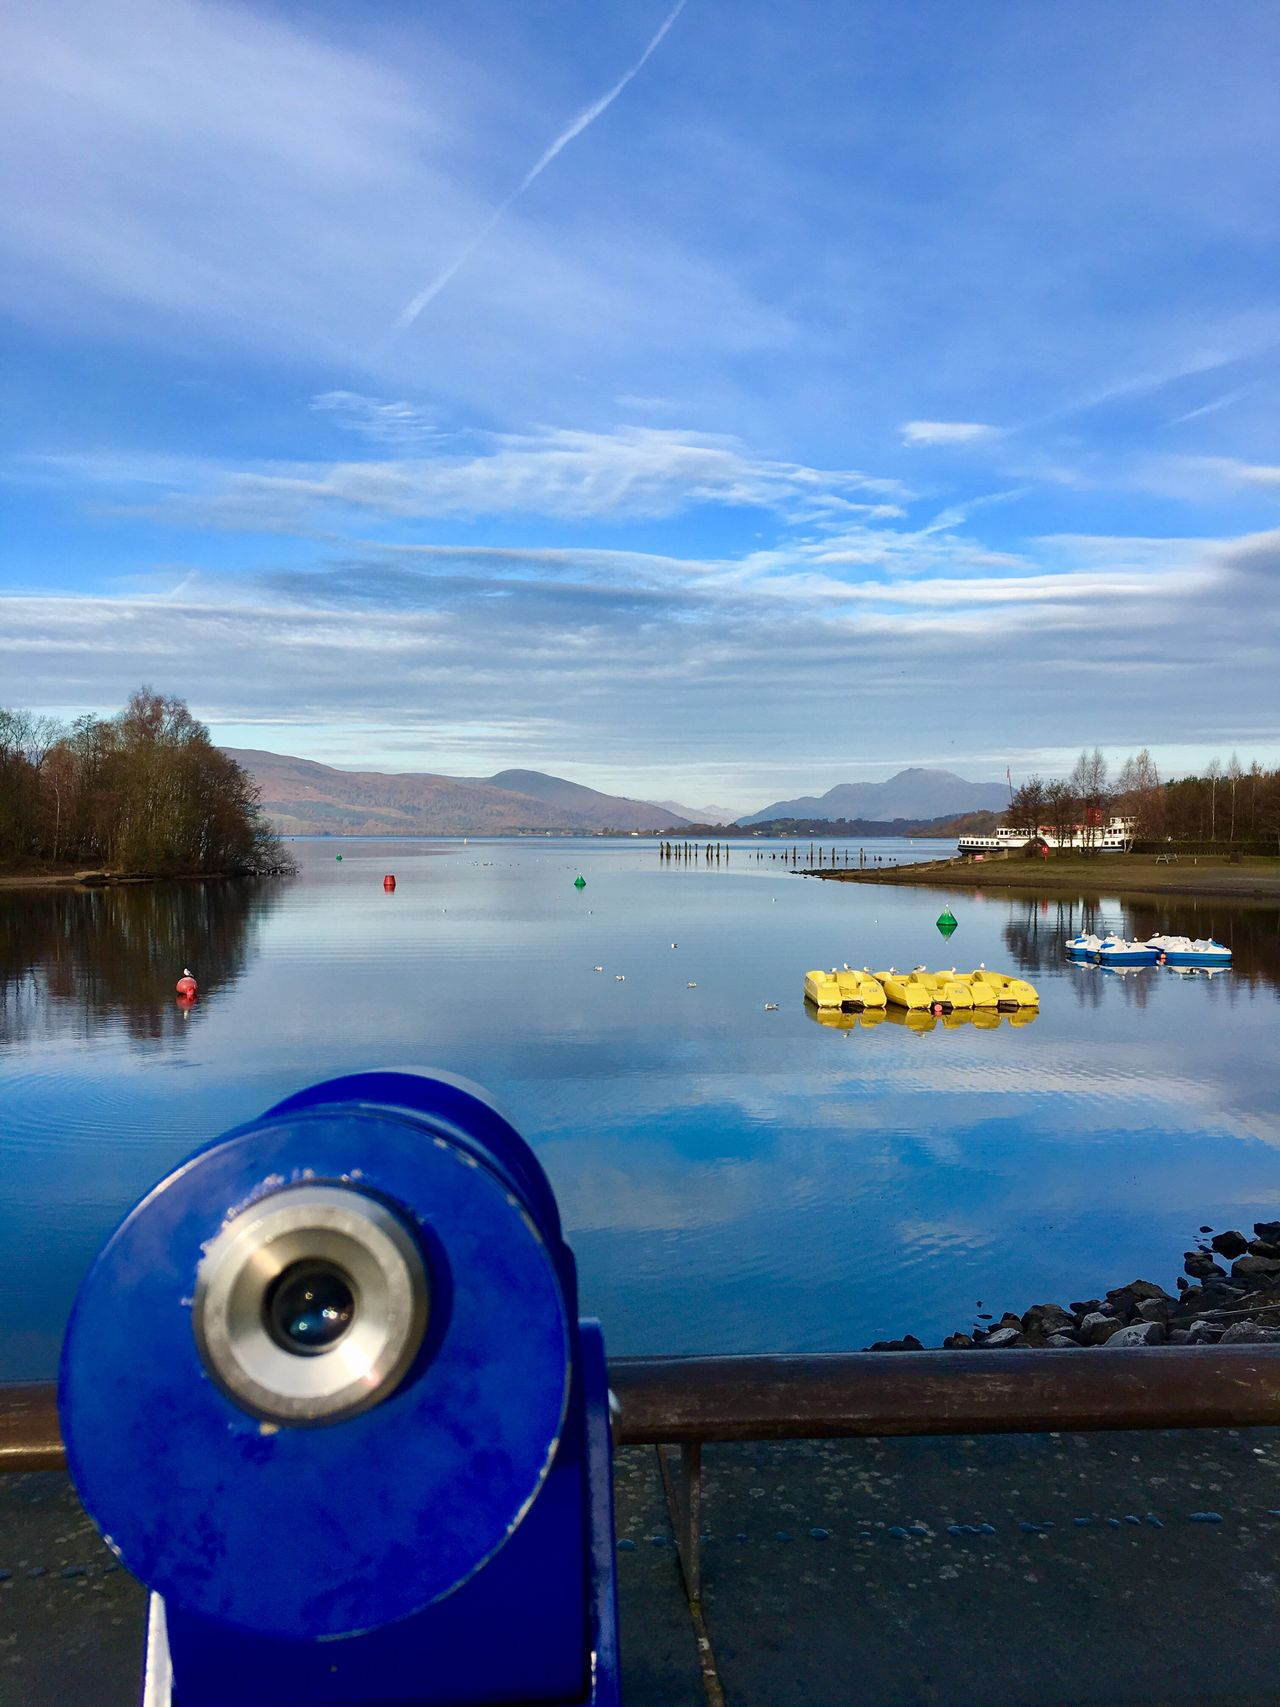 Loch Lomond Scotland Scottish Highlands LochLomond Loch  Ice Water Sky Scenics Nature Lake Beauty In Nature Reflection Tranquility Nautical Vessel Day Outdoors Cloud - Sky Tranquil Scene Tree No People